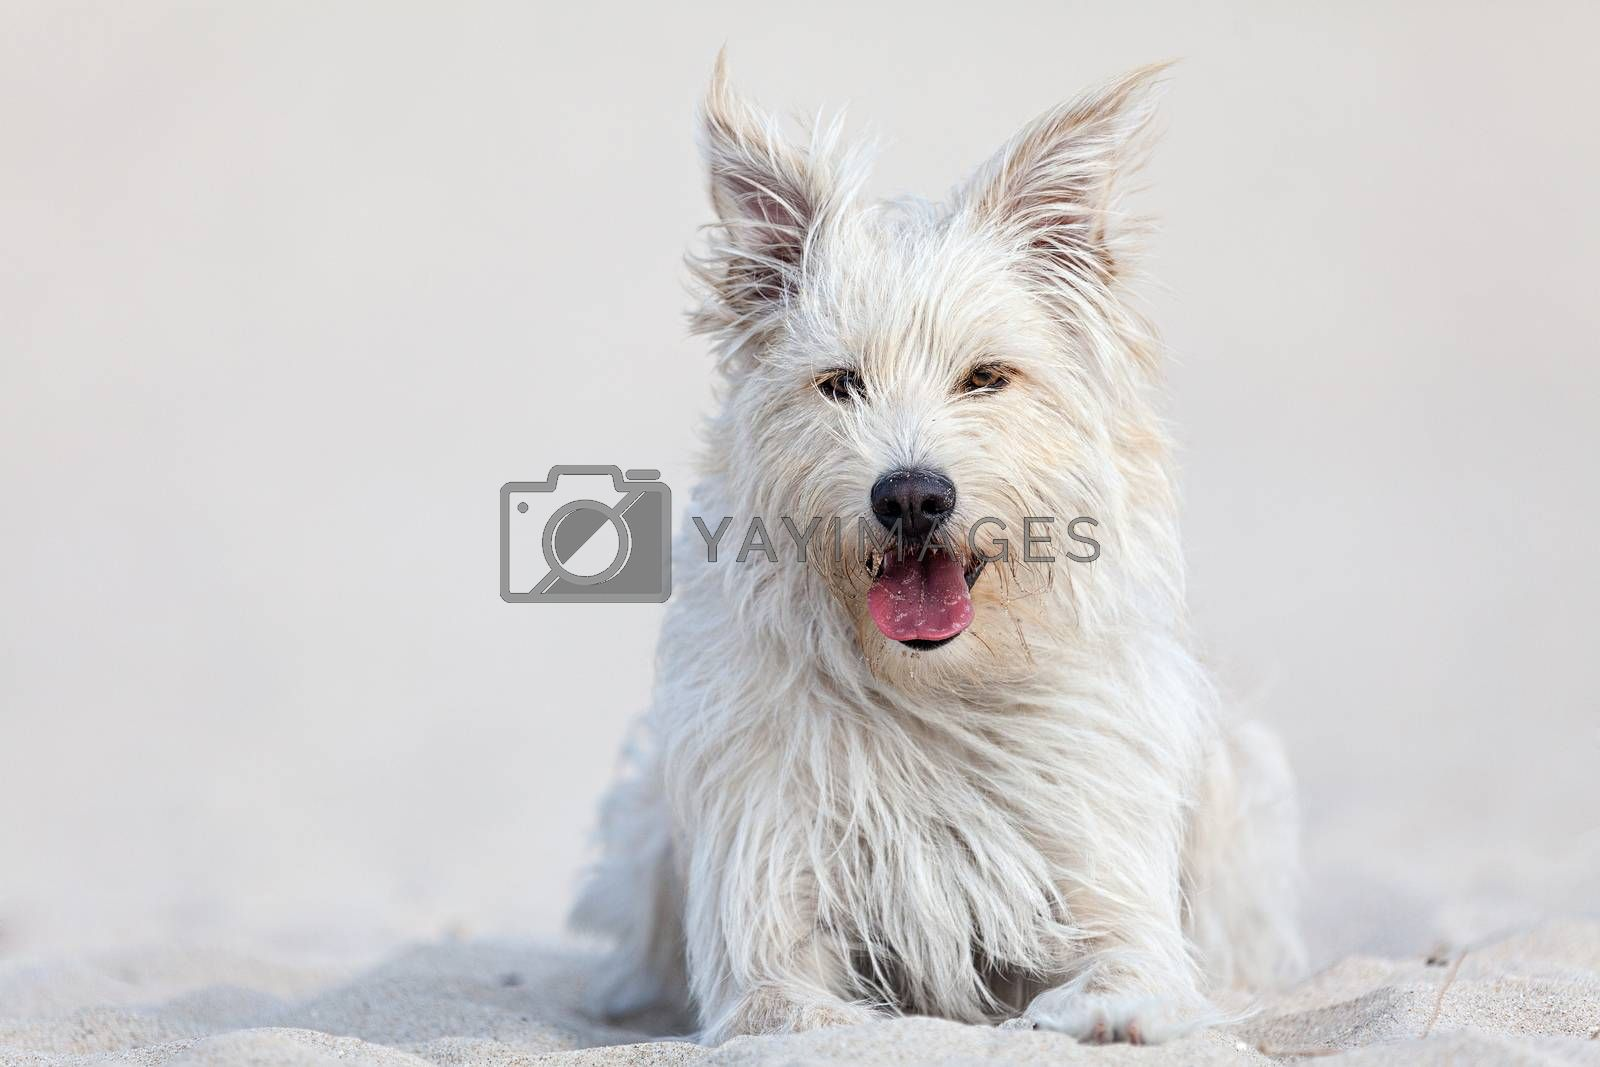 White dog on the beach by ajn